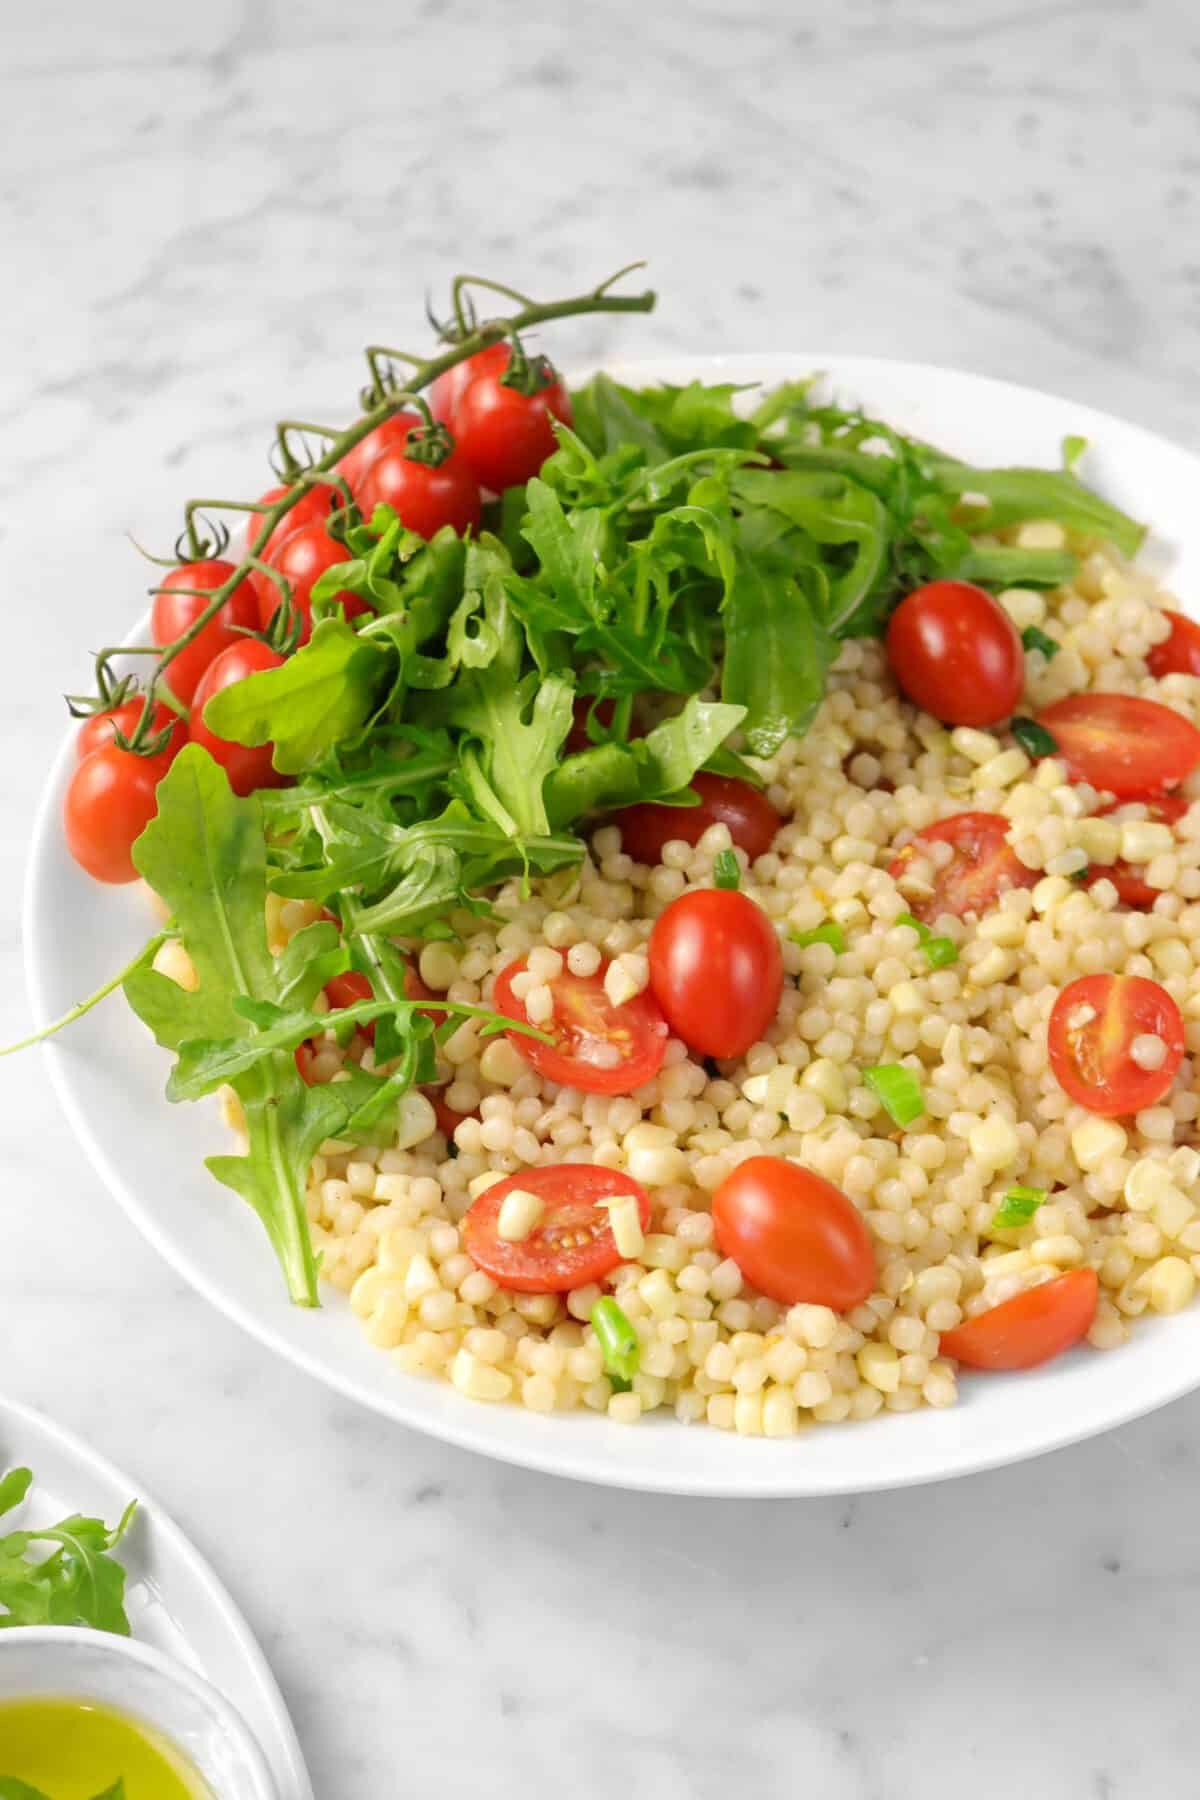 corn and tomato couscous salad with arugula on top and tomatoes on the vine